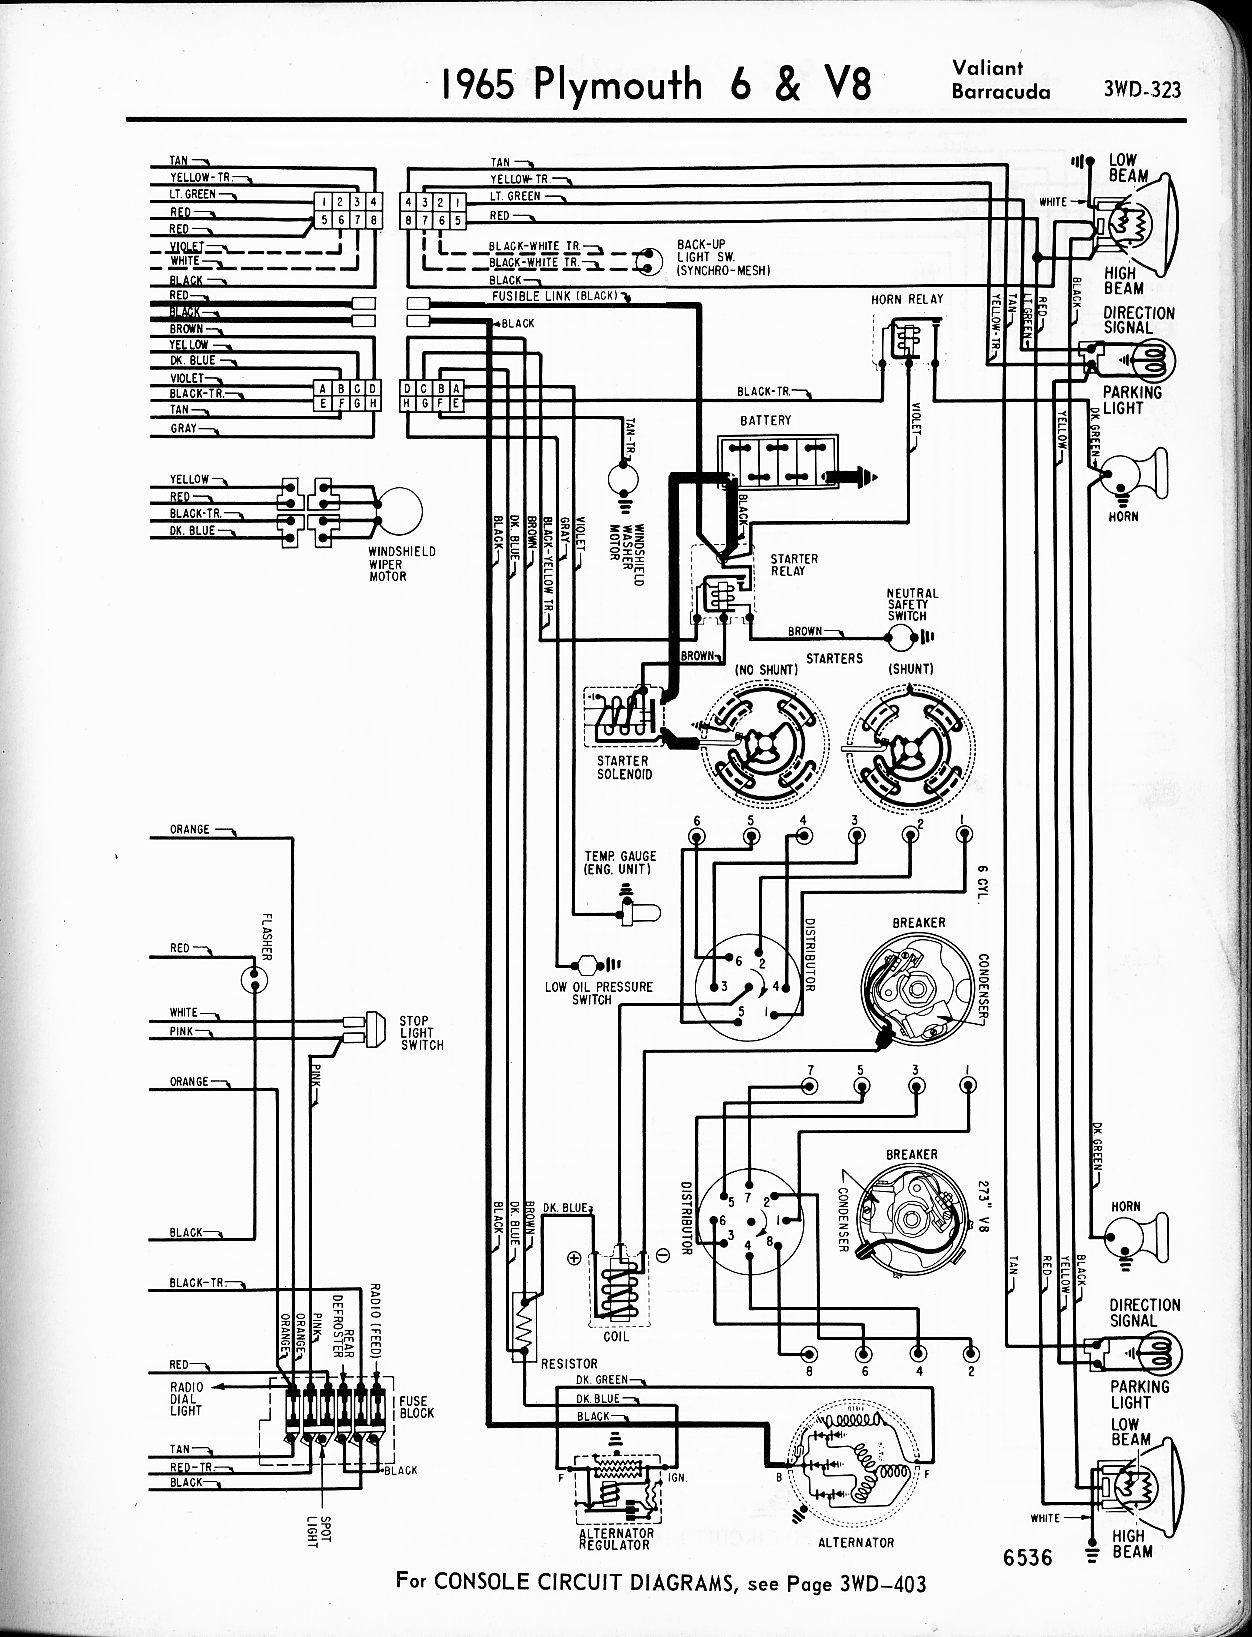 MWire5765 323?resize\\\=665%2C869 dtx gnp 40048 wiring diagram dtx wiring diagrams collection  at gsmx.co